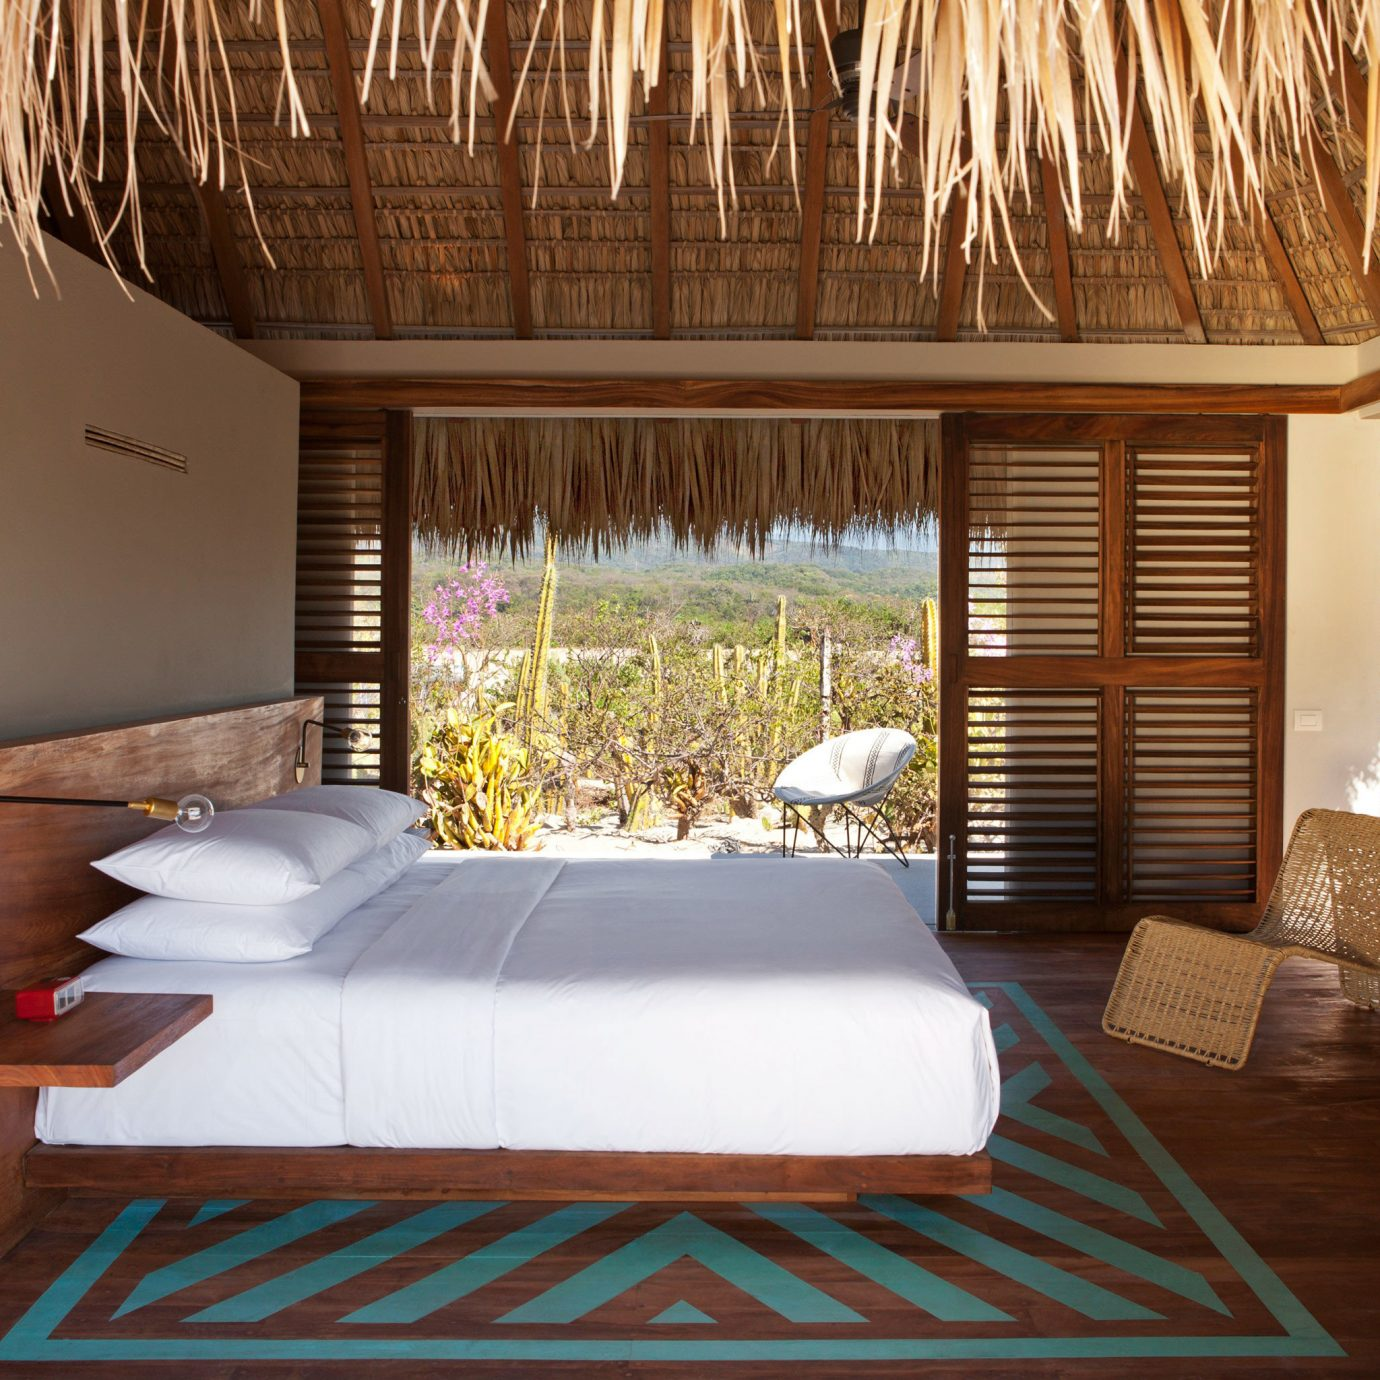 Bedroom Hotels Luxury Romantic Scenic views Suite Trip Ideas Tropical property house home cottage Villa living room Resort farmhouse mansion